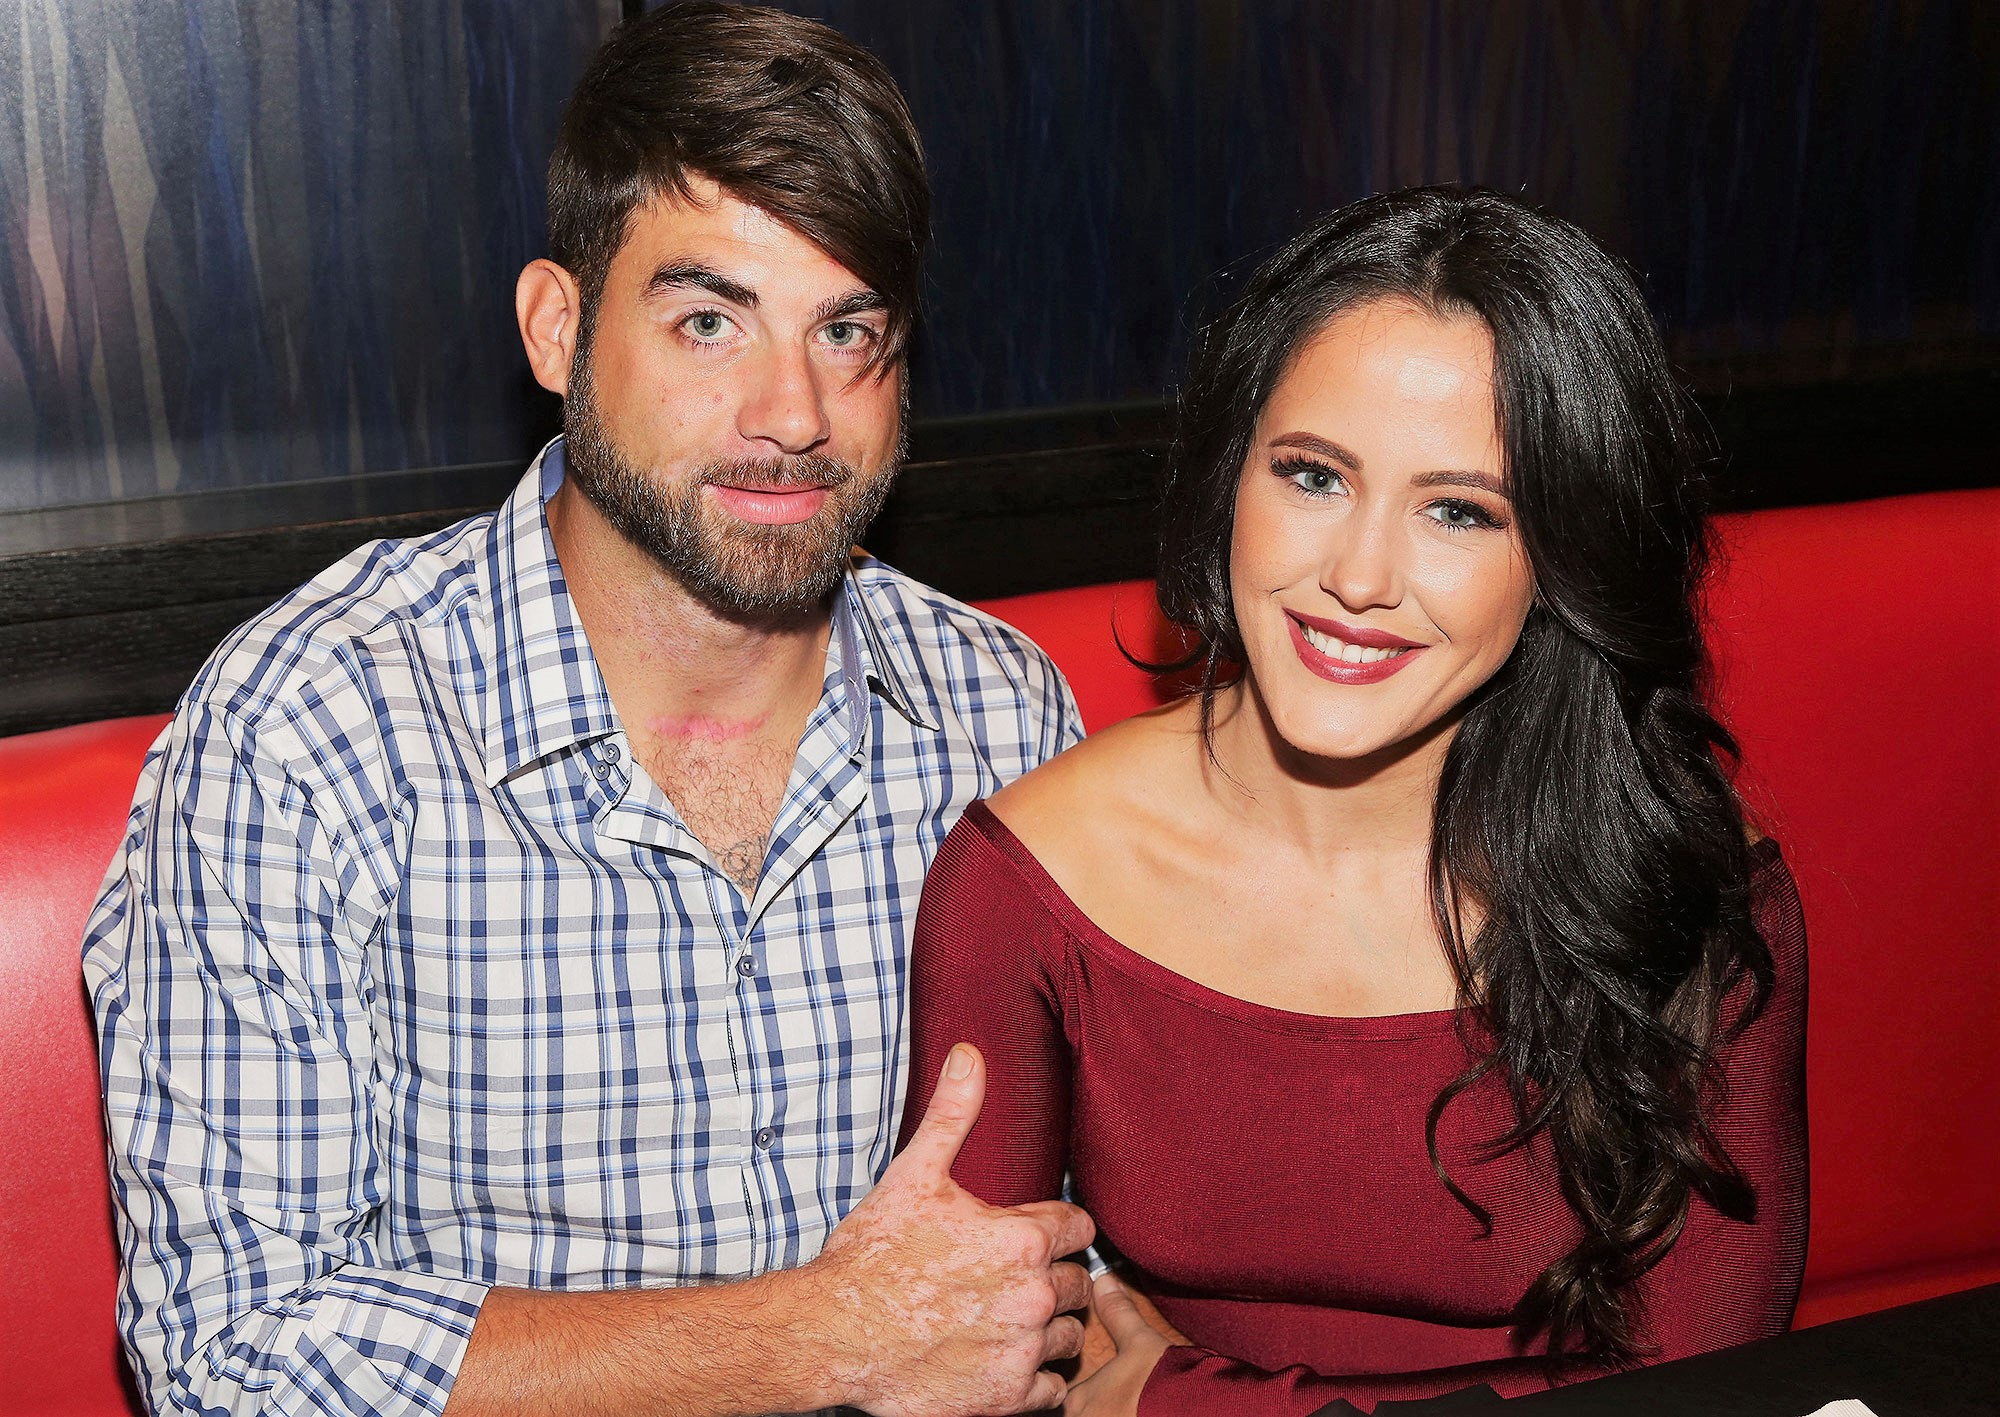 Teen Mom's Jenelle Evans May Divorce Husband After He Shot Family Dog, Animal Control Called